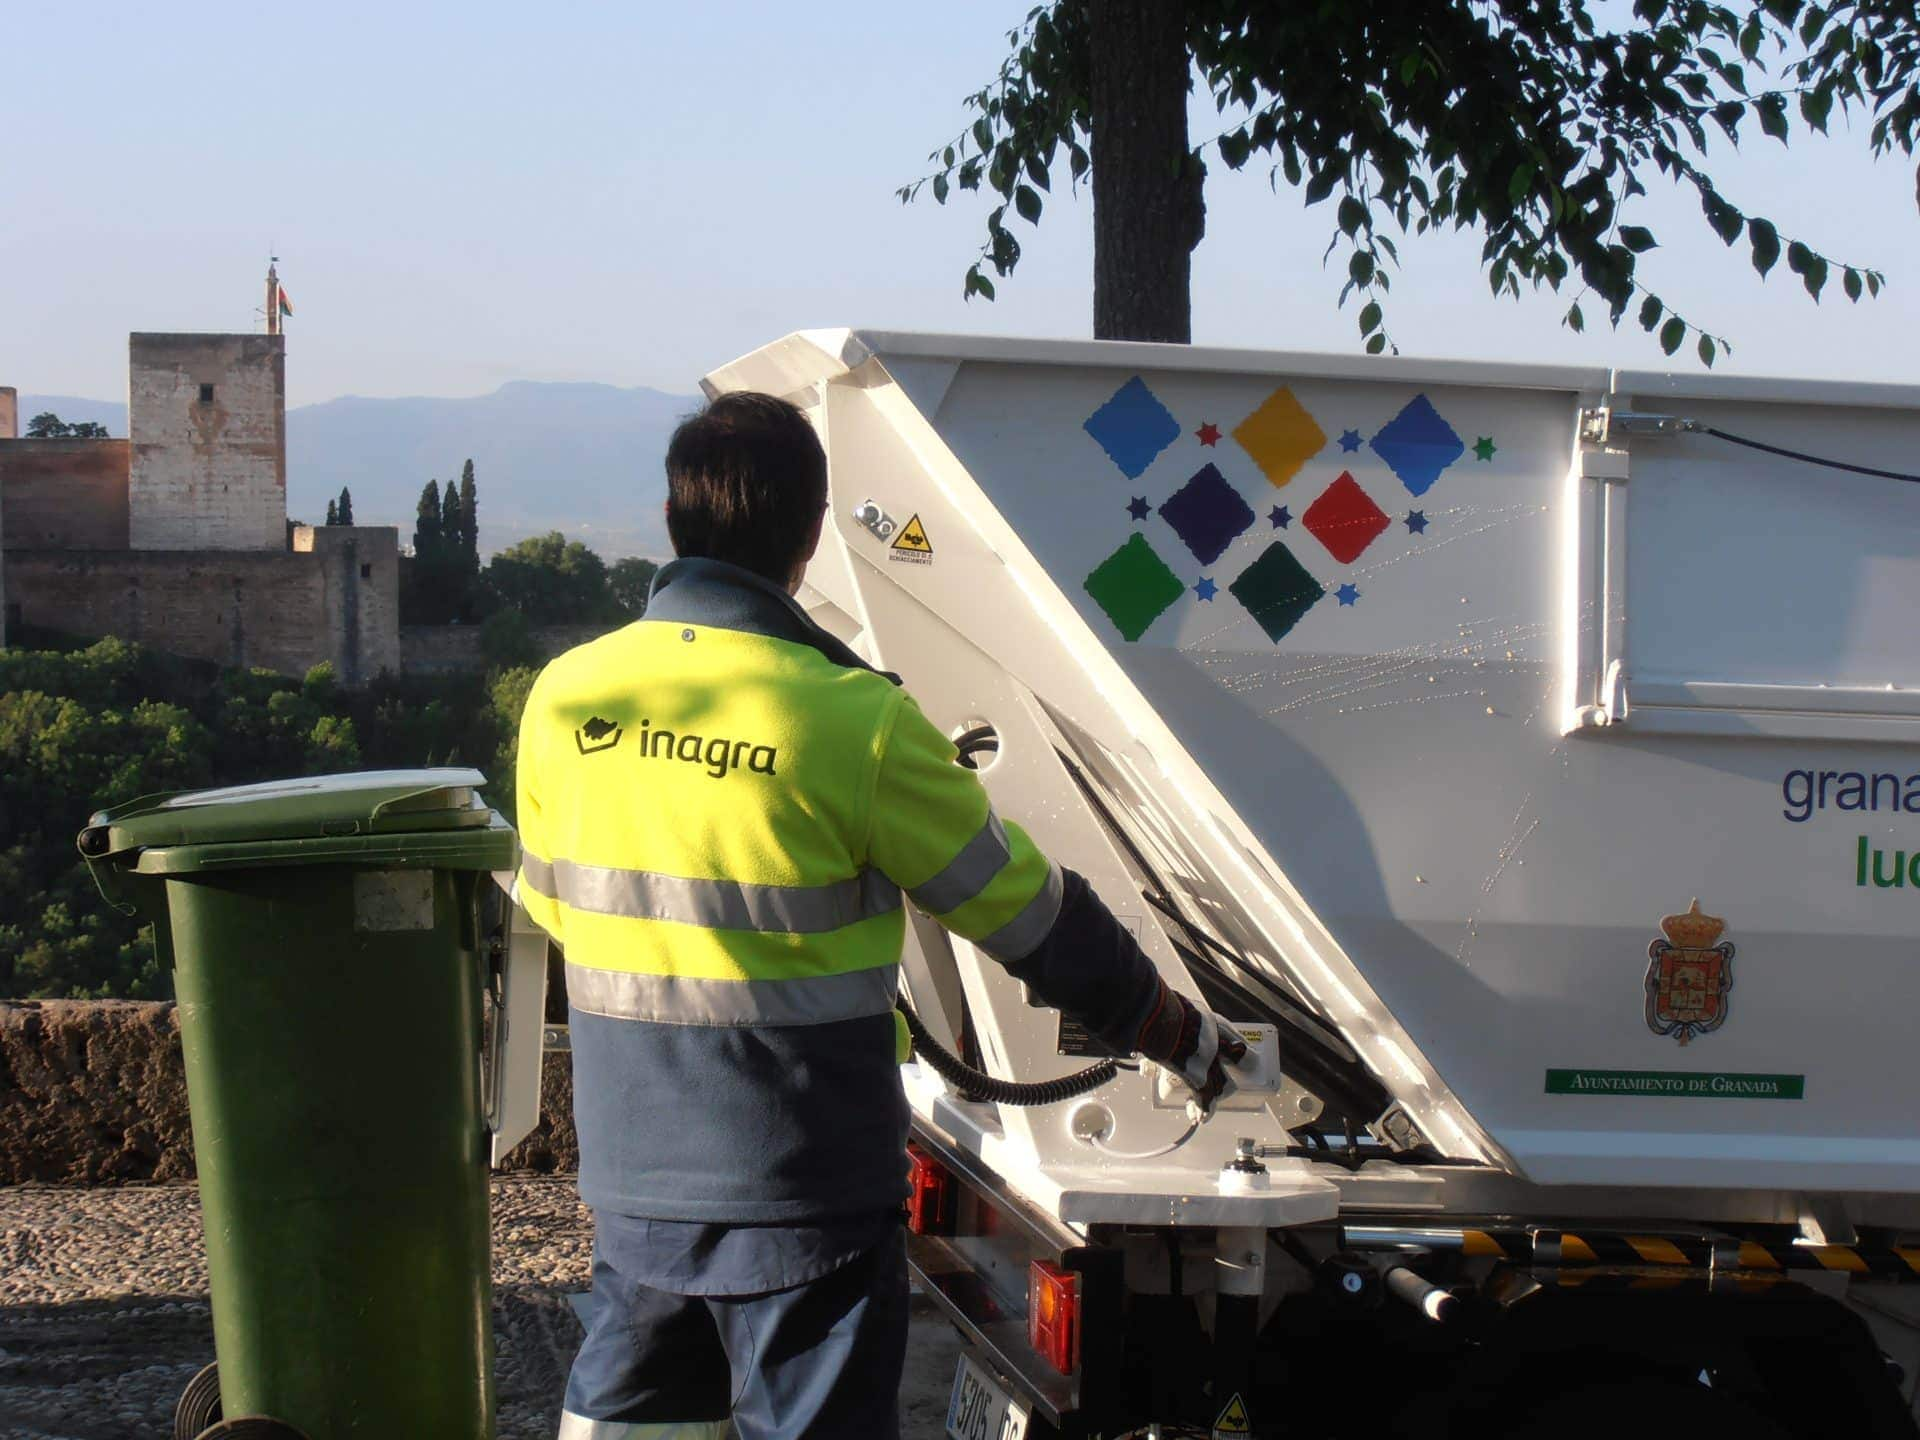 dynamic municipal waste collection project